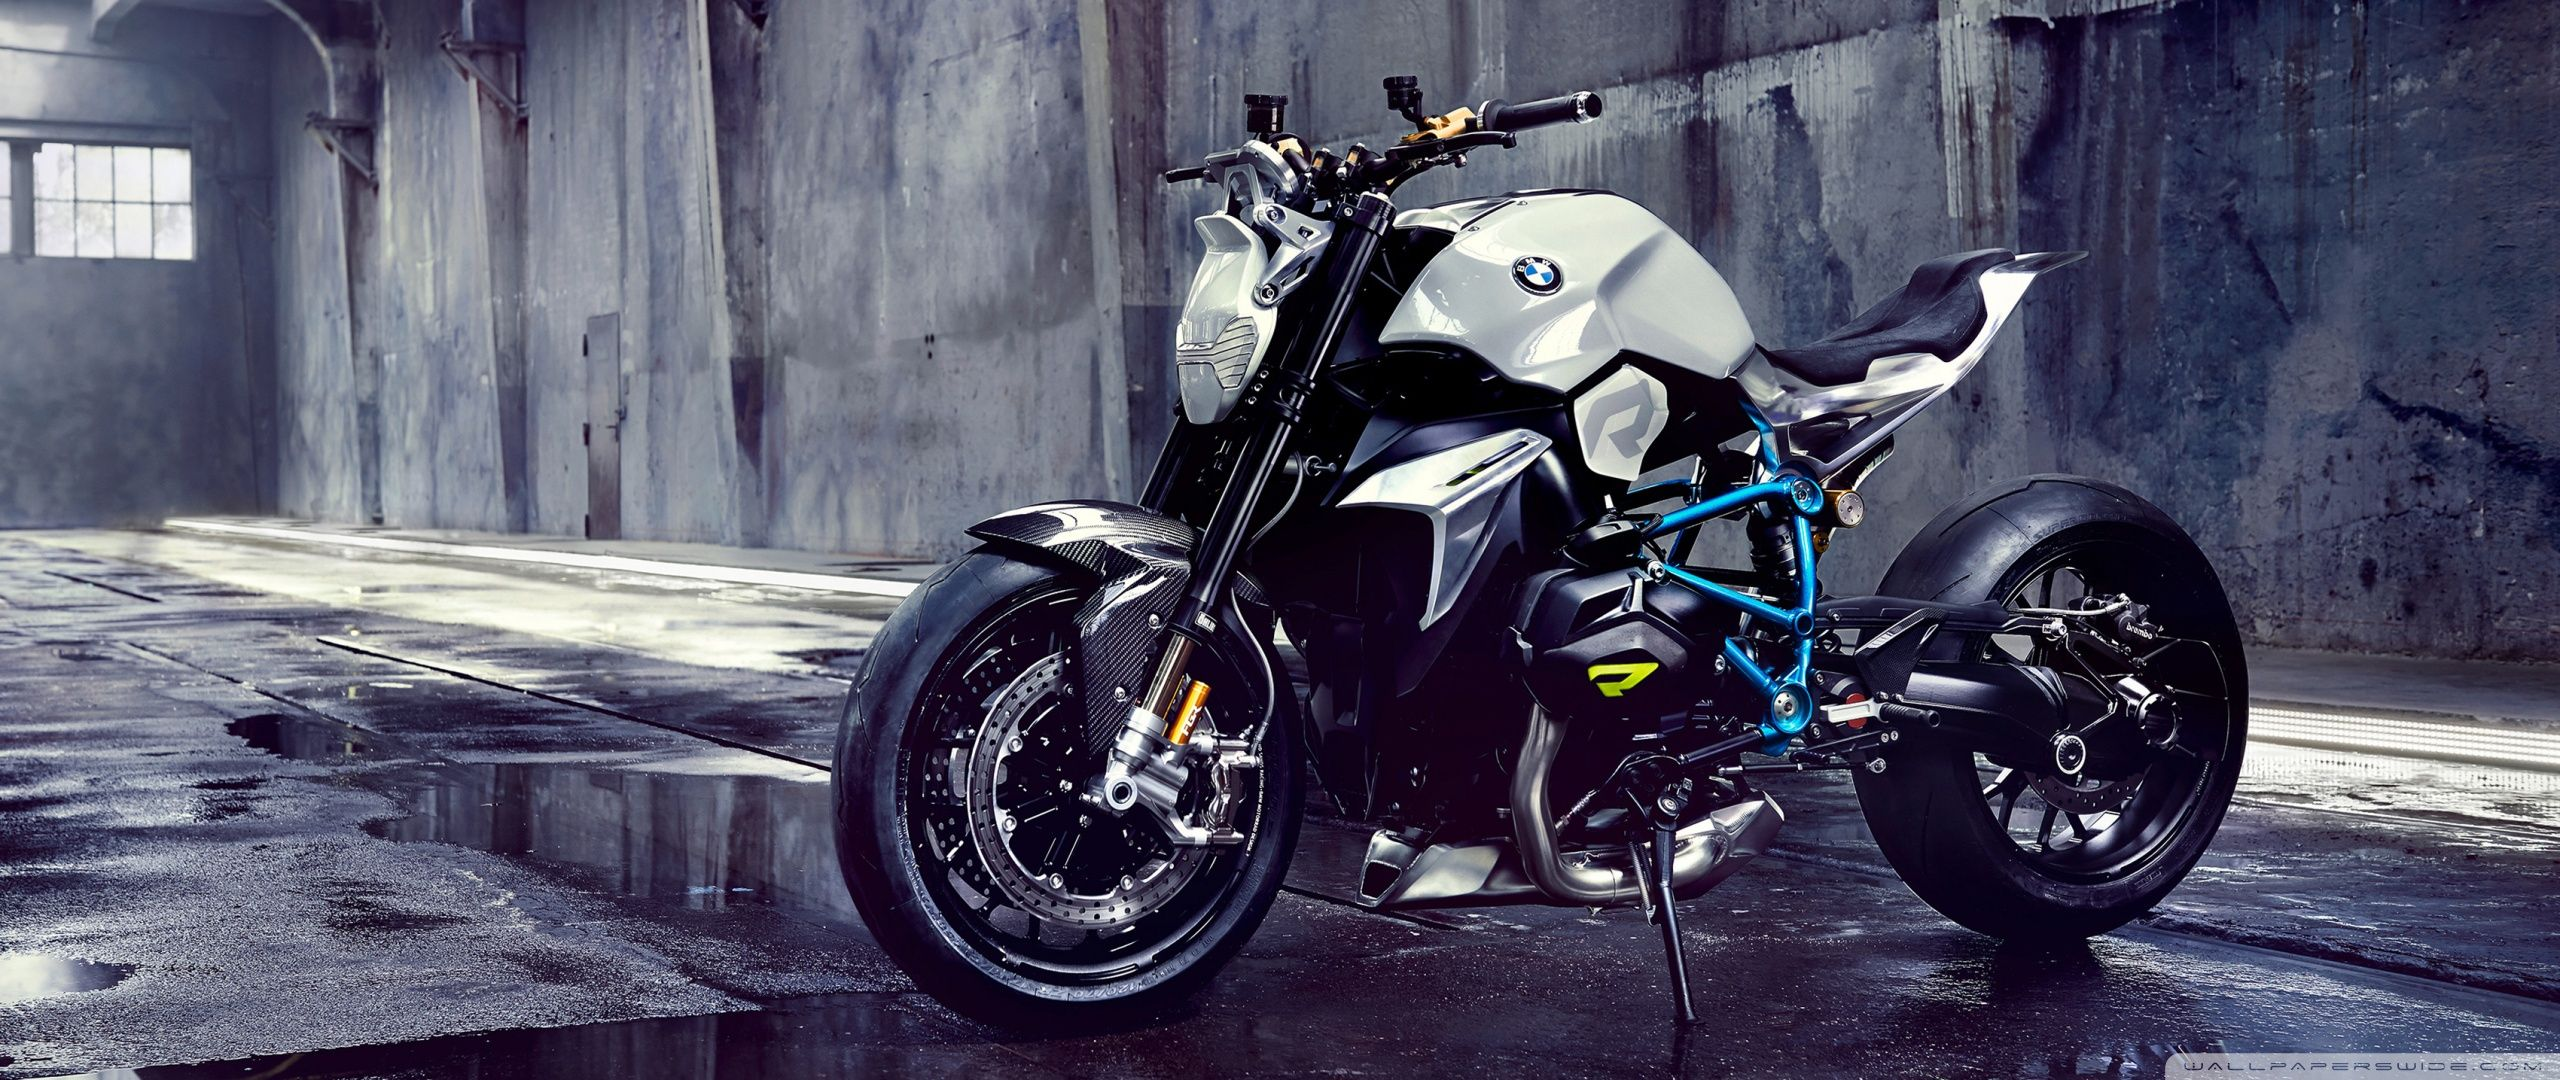 Bmw motorcycle wallpapers top free bmw motorcycle backgrounds wallpaperaccess - Superbike wallpaper ...